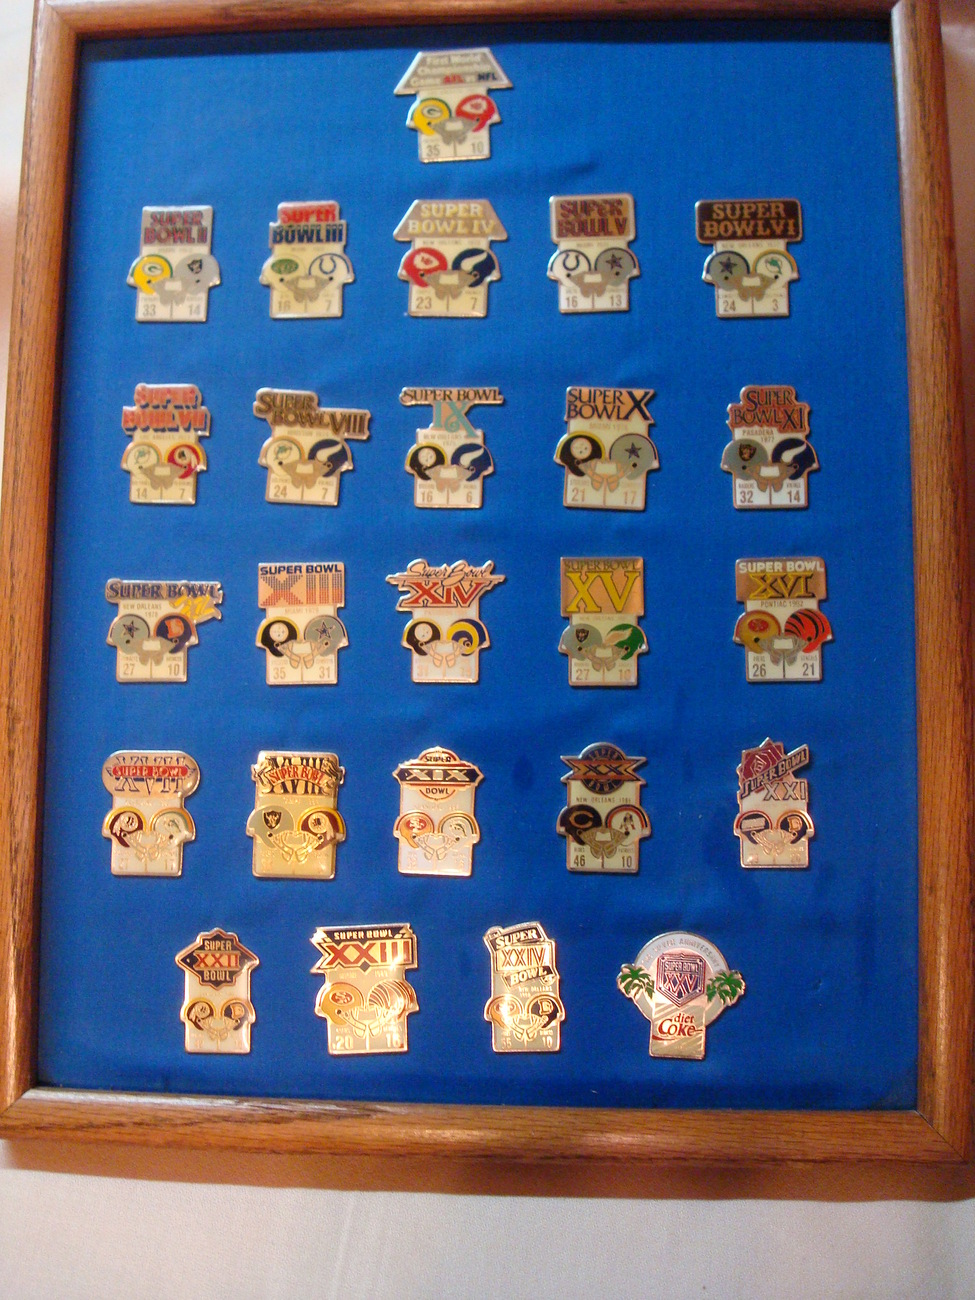 Super Bowl NFL Pin Collection National Football League Framed 1 thru 25 Pins